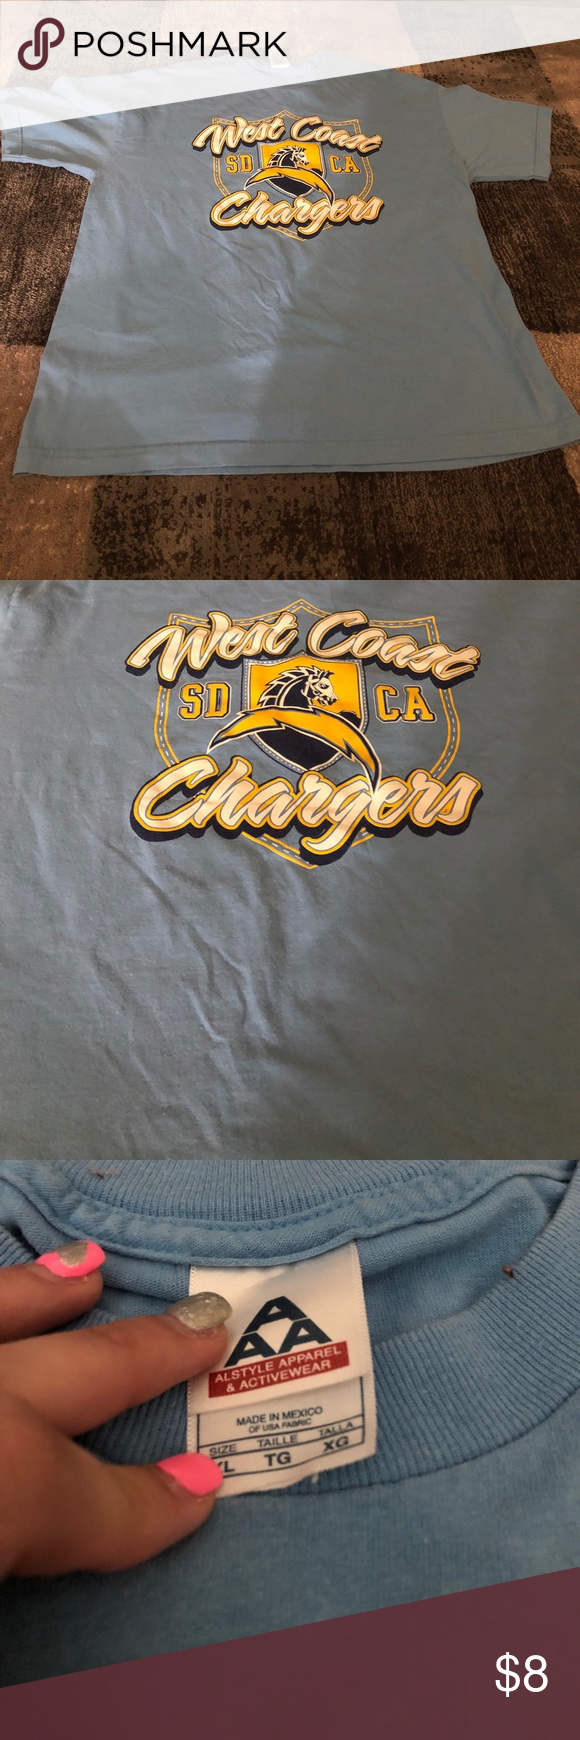 Chargers Tee West Coast San Diego Chargers T Shirt Alstyle Apparel And Activewear Shirts Tees Short Sleeve Active Wear Shirts Activewear Blue Tees